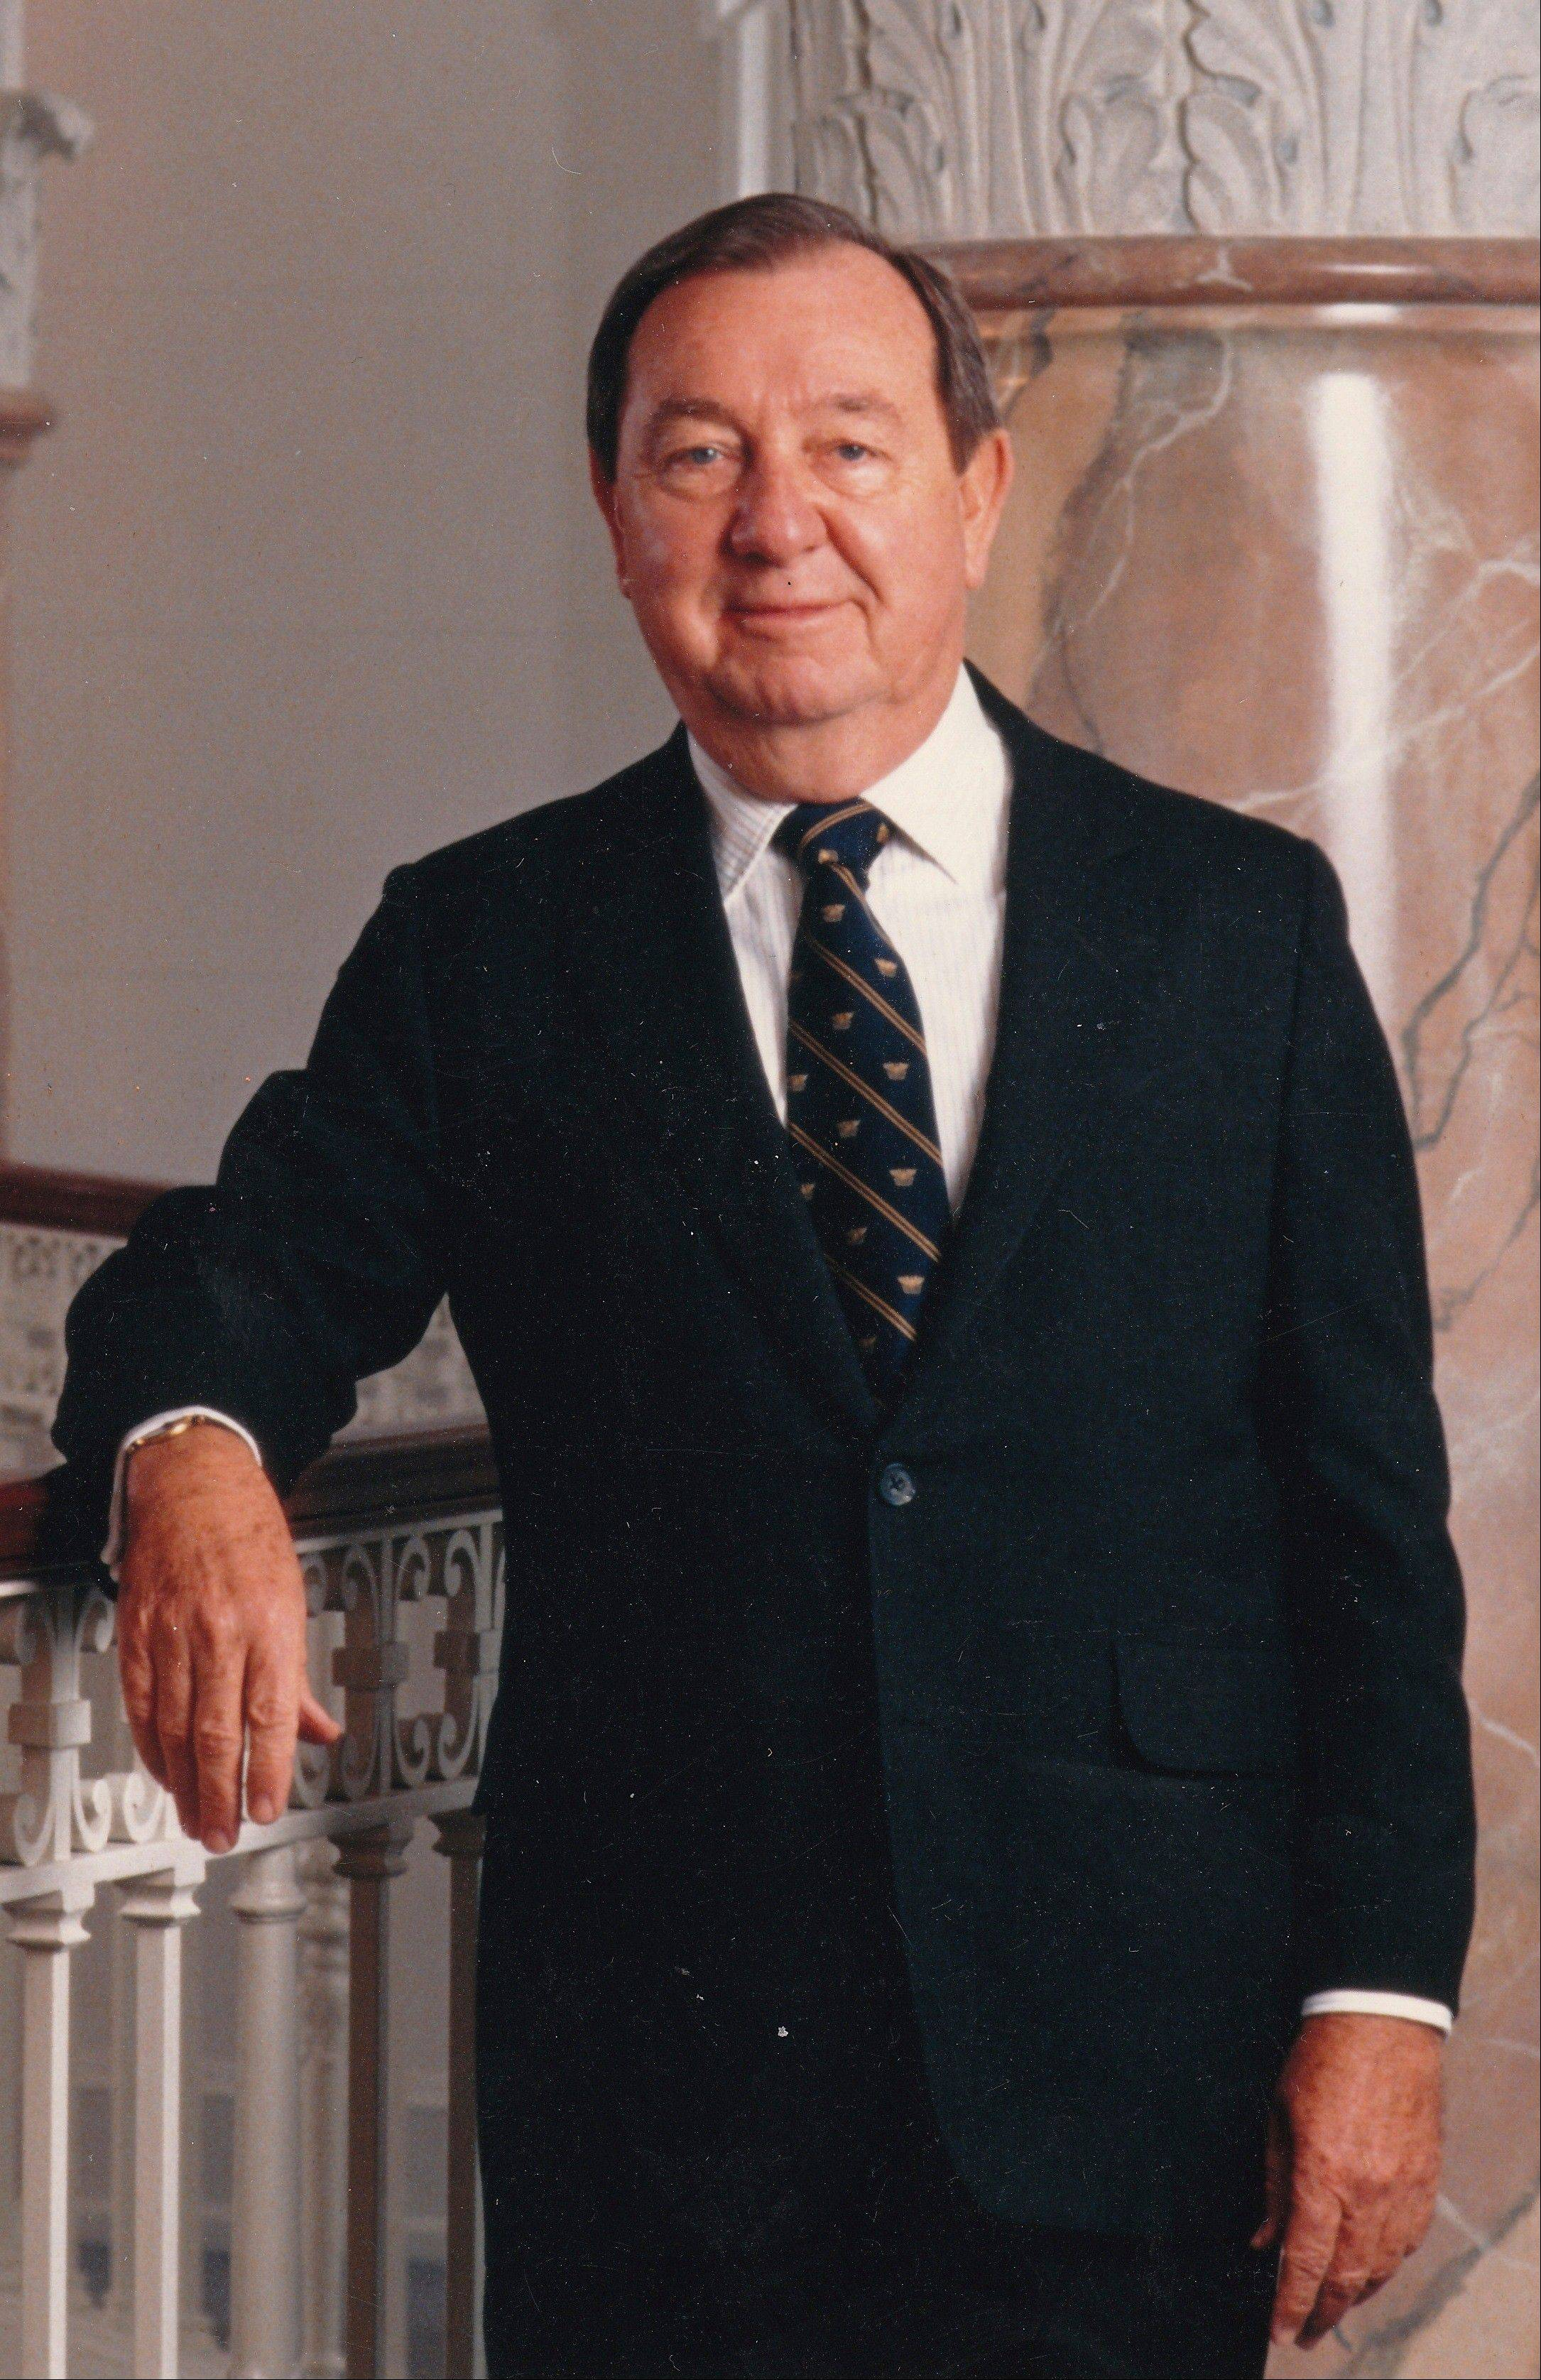 Joe Allbritton, founder of Allbrittion Communications who became one of Washington�s most influential men by building media and banking empires, died at the age of 87, on Wednesday, Dec. 12, 2012, at a hospital in Houston, where he lived.